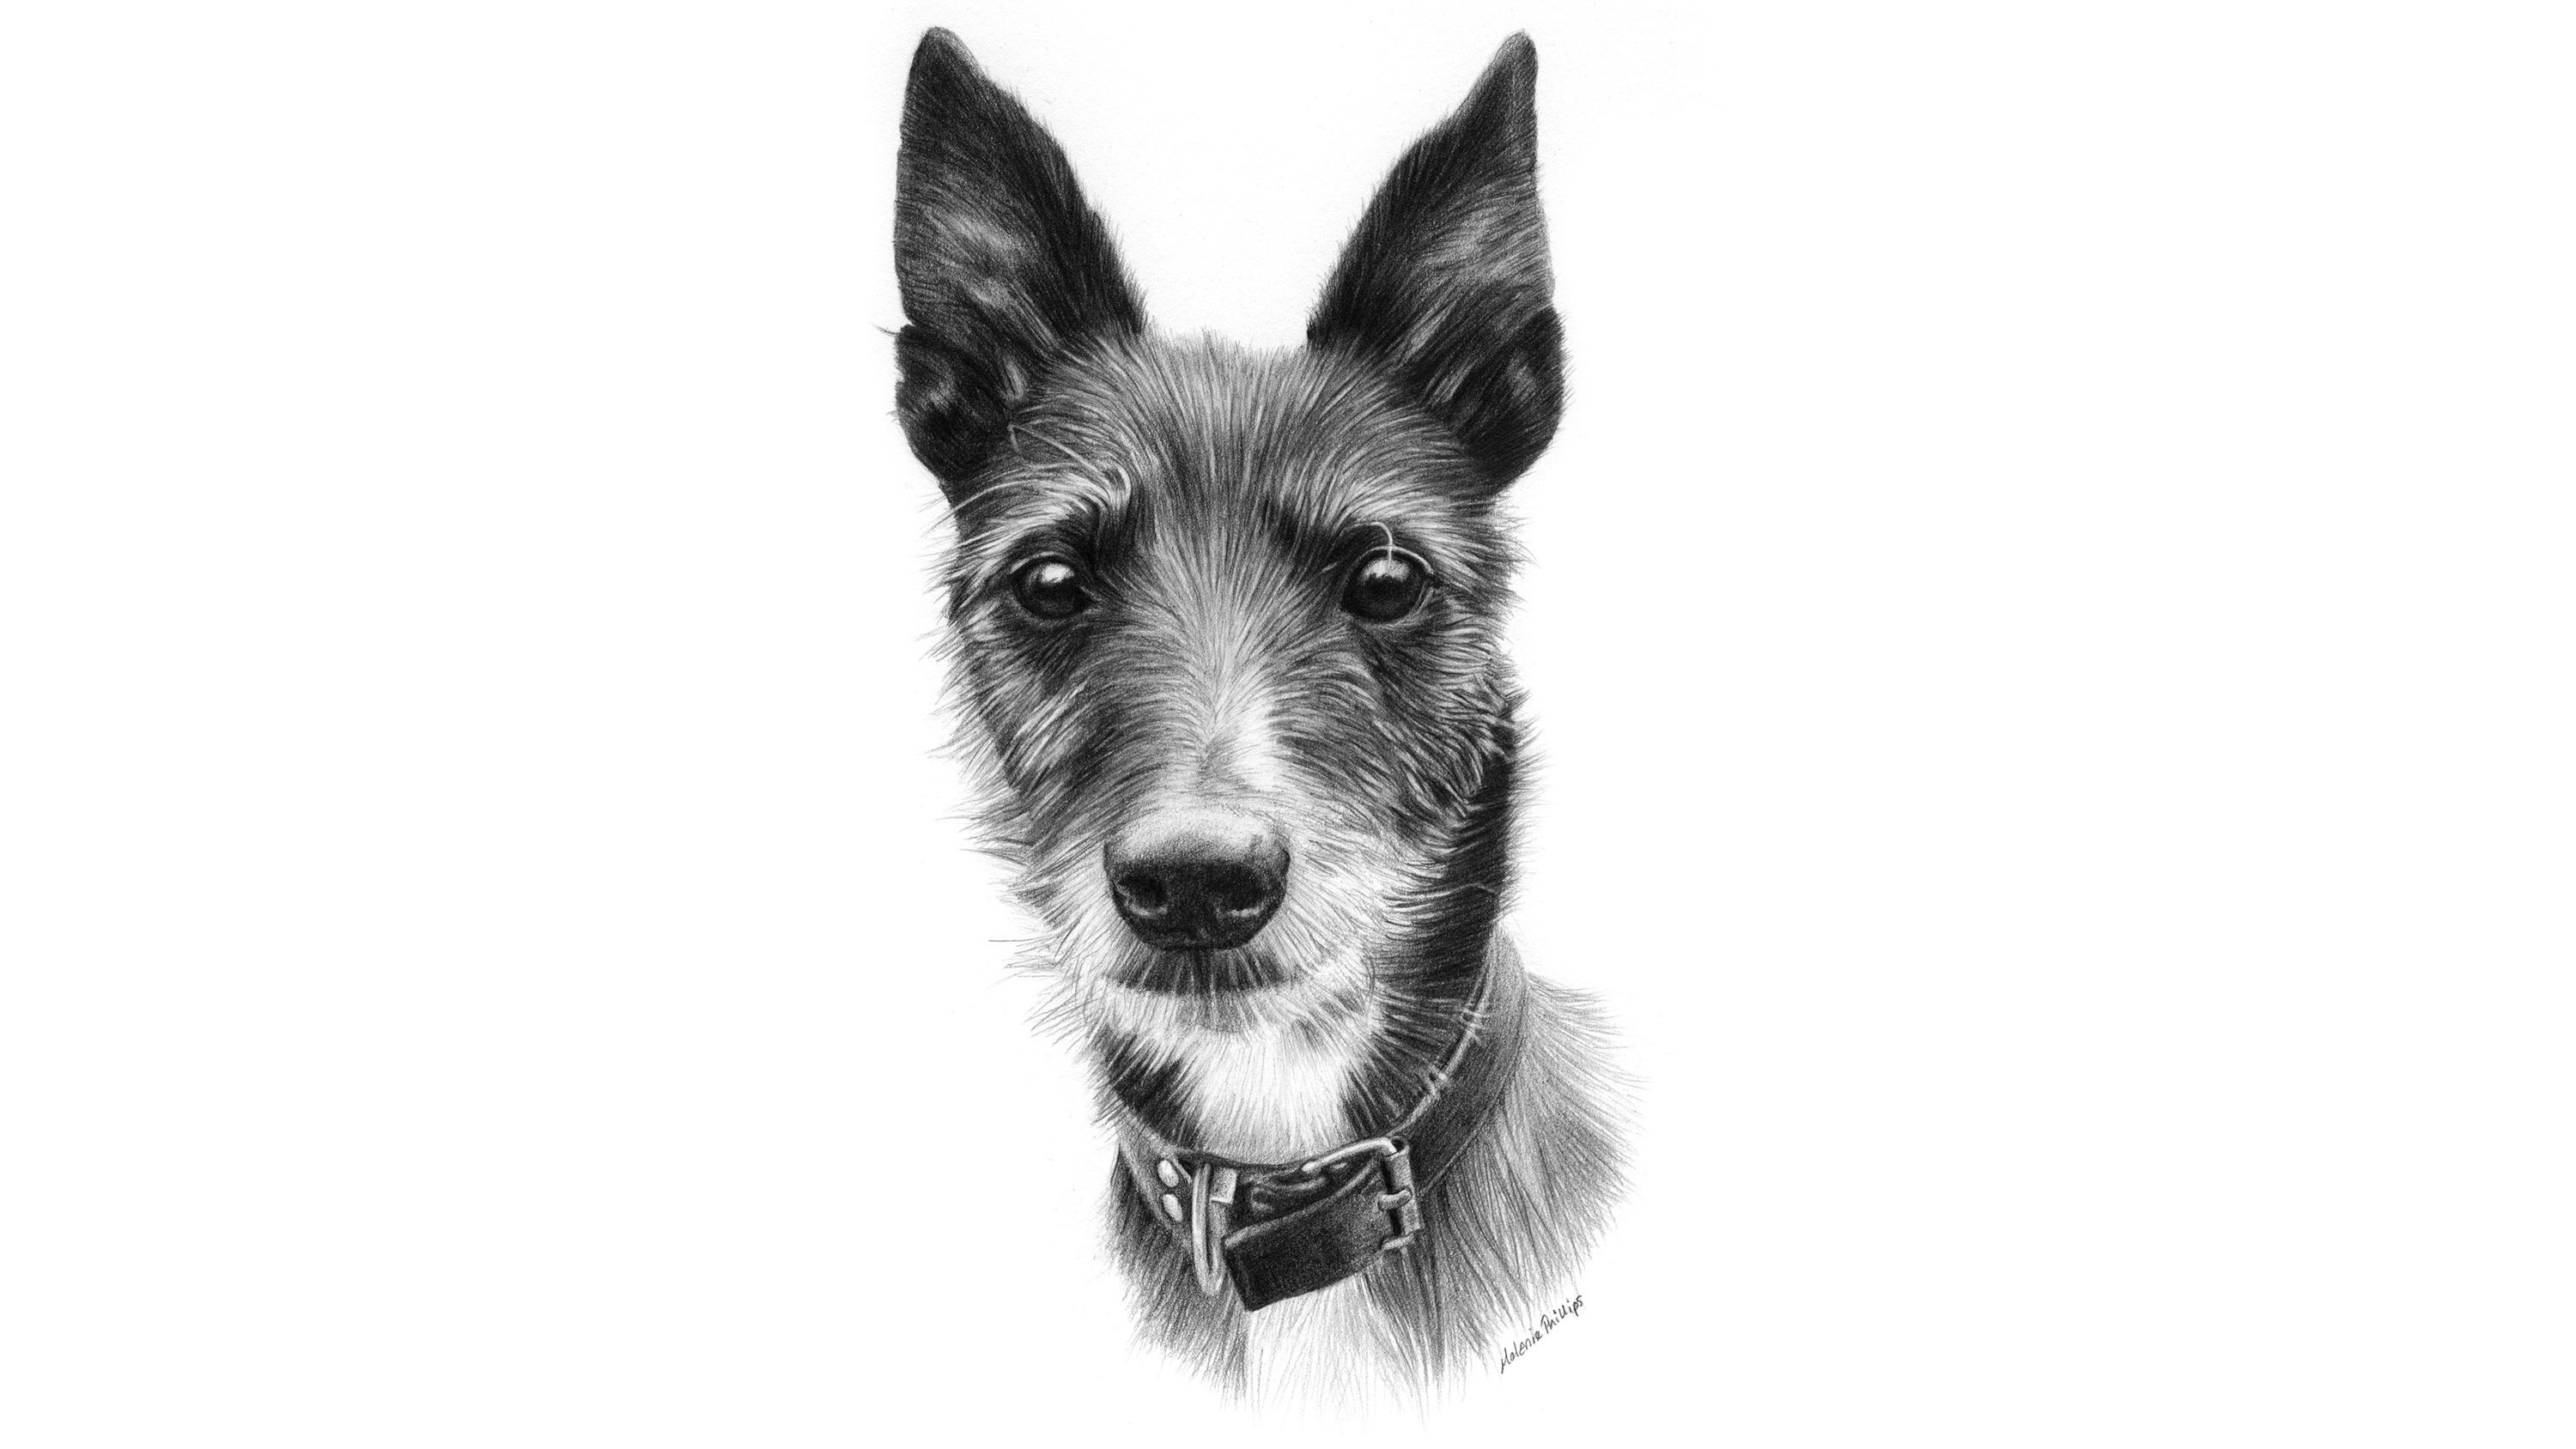 Draw A Pencil Portrait Of A Dog Creative Bloq